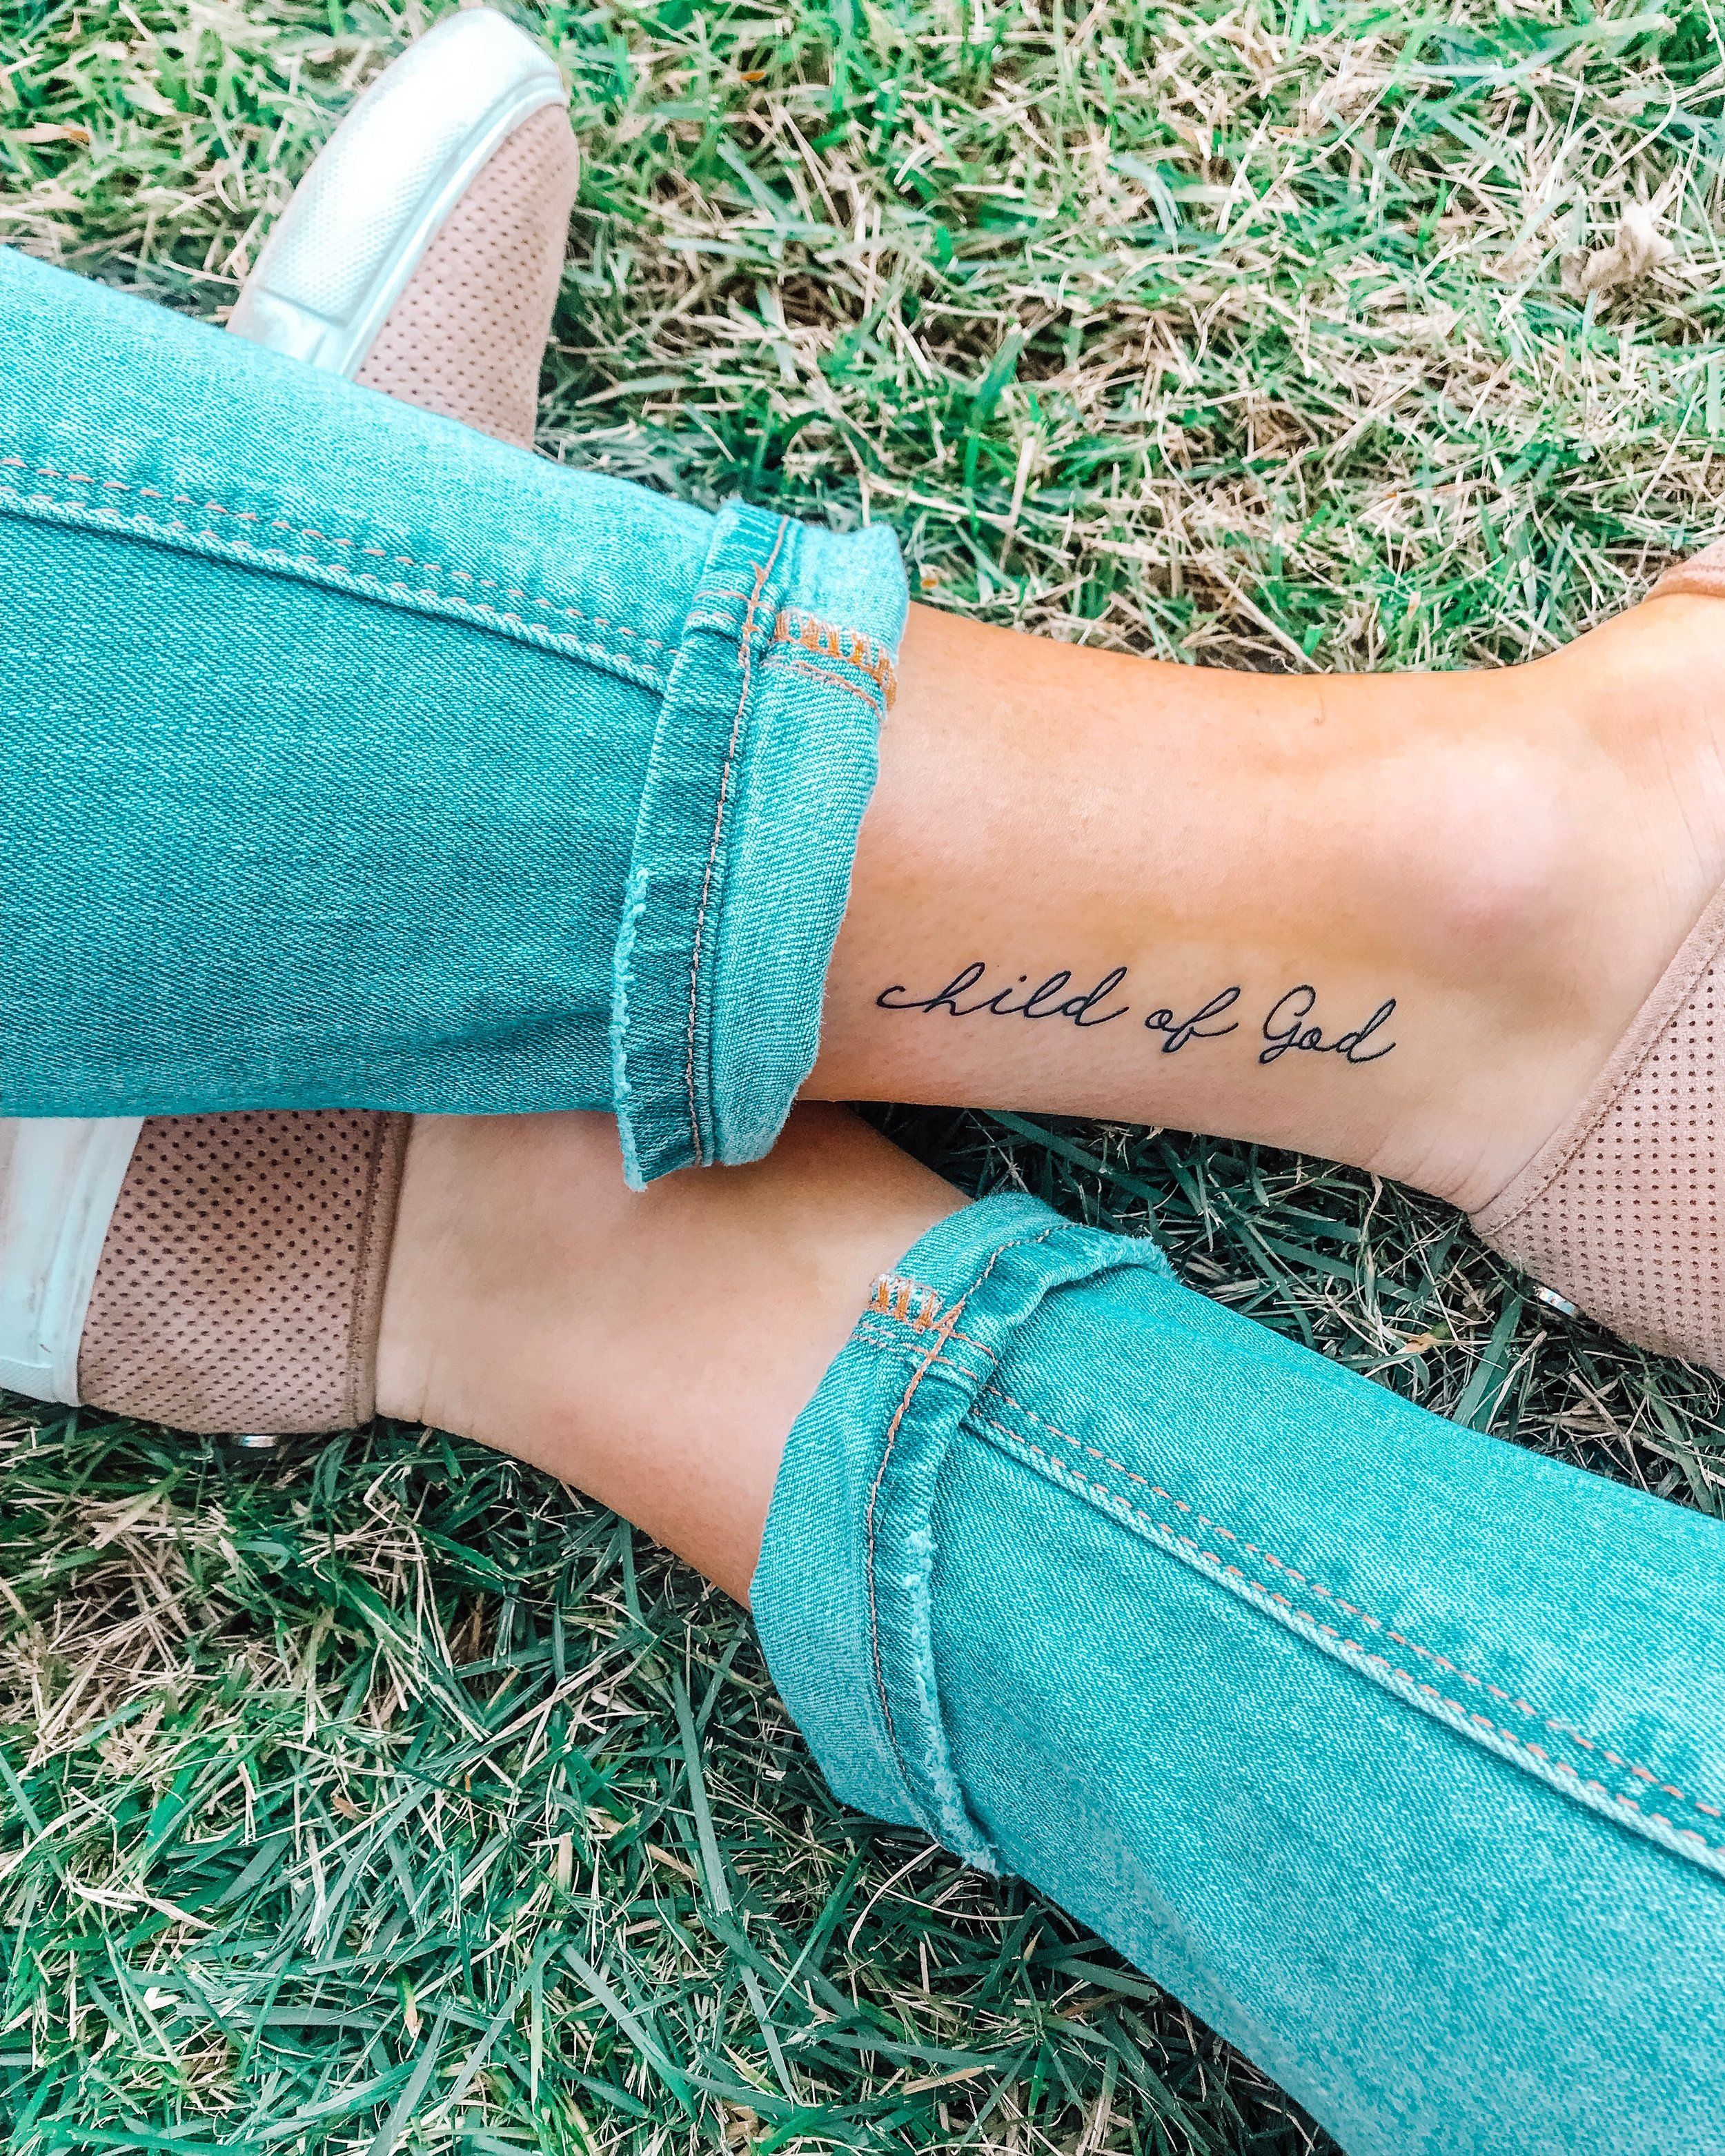 MY FIRST TATTOO: My Experience & the Meaning Behind it — Julia Elise Collective -  child of God tattoo  - #behind #Collective #elise #experience #first #julia #meaning #tattoo #tattooideascollarbone #tattooideassmall #tattooideasunique